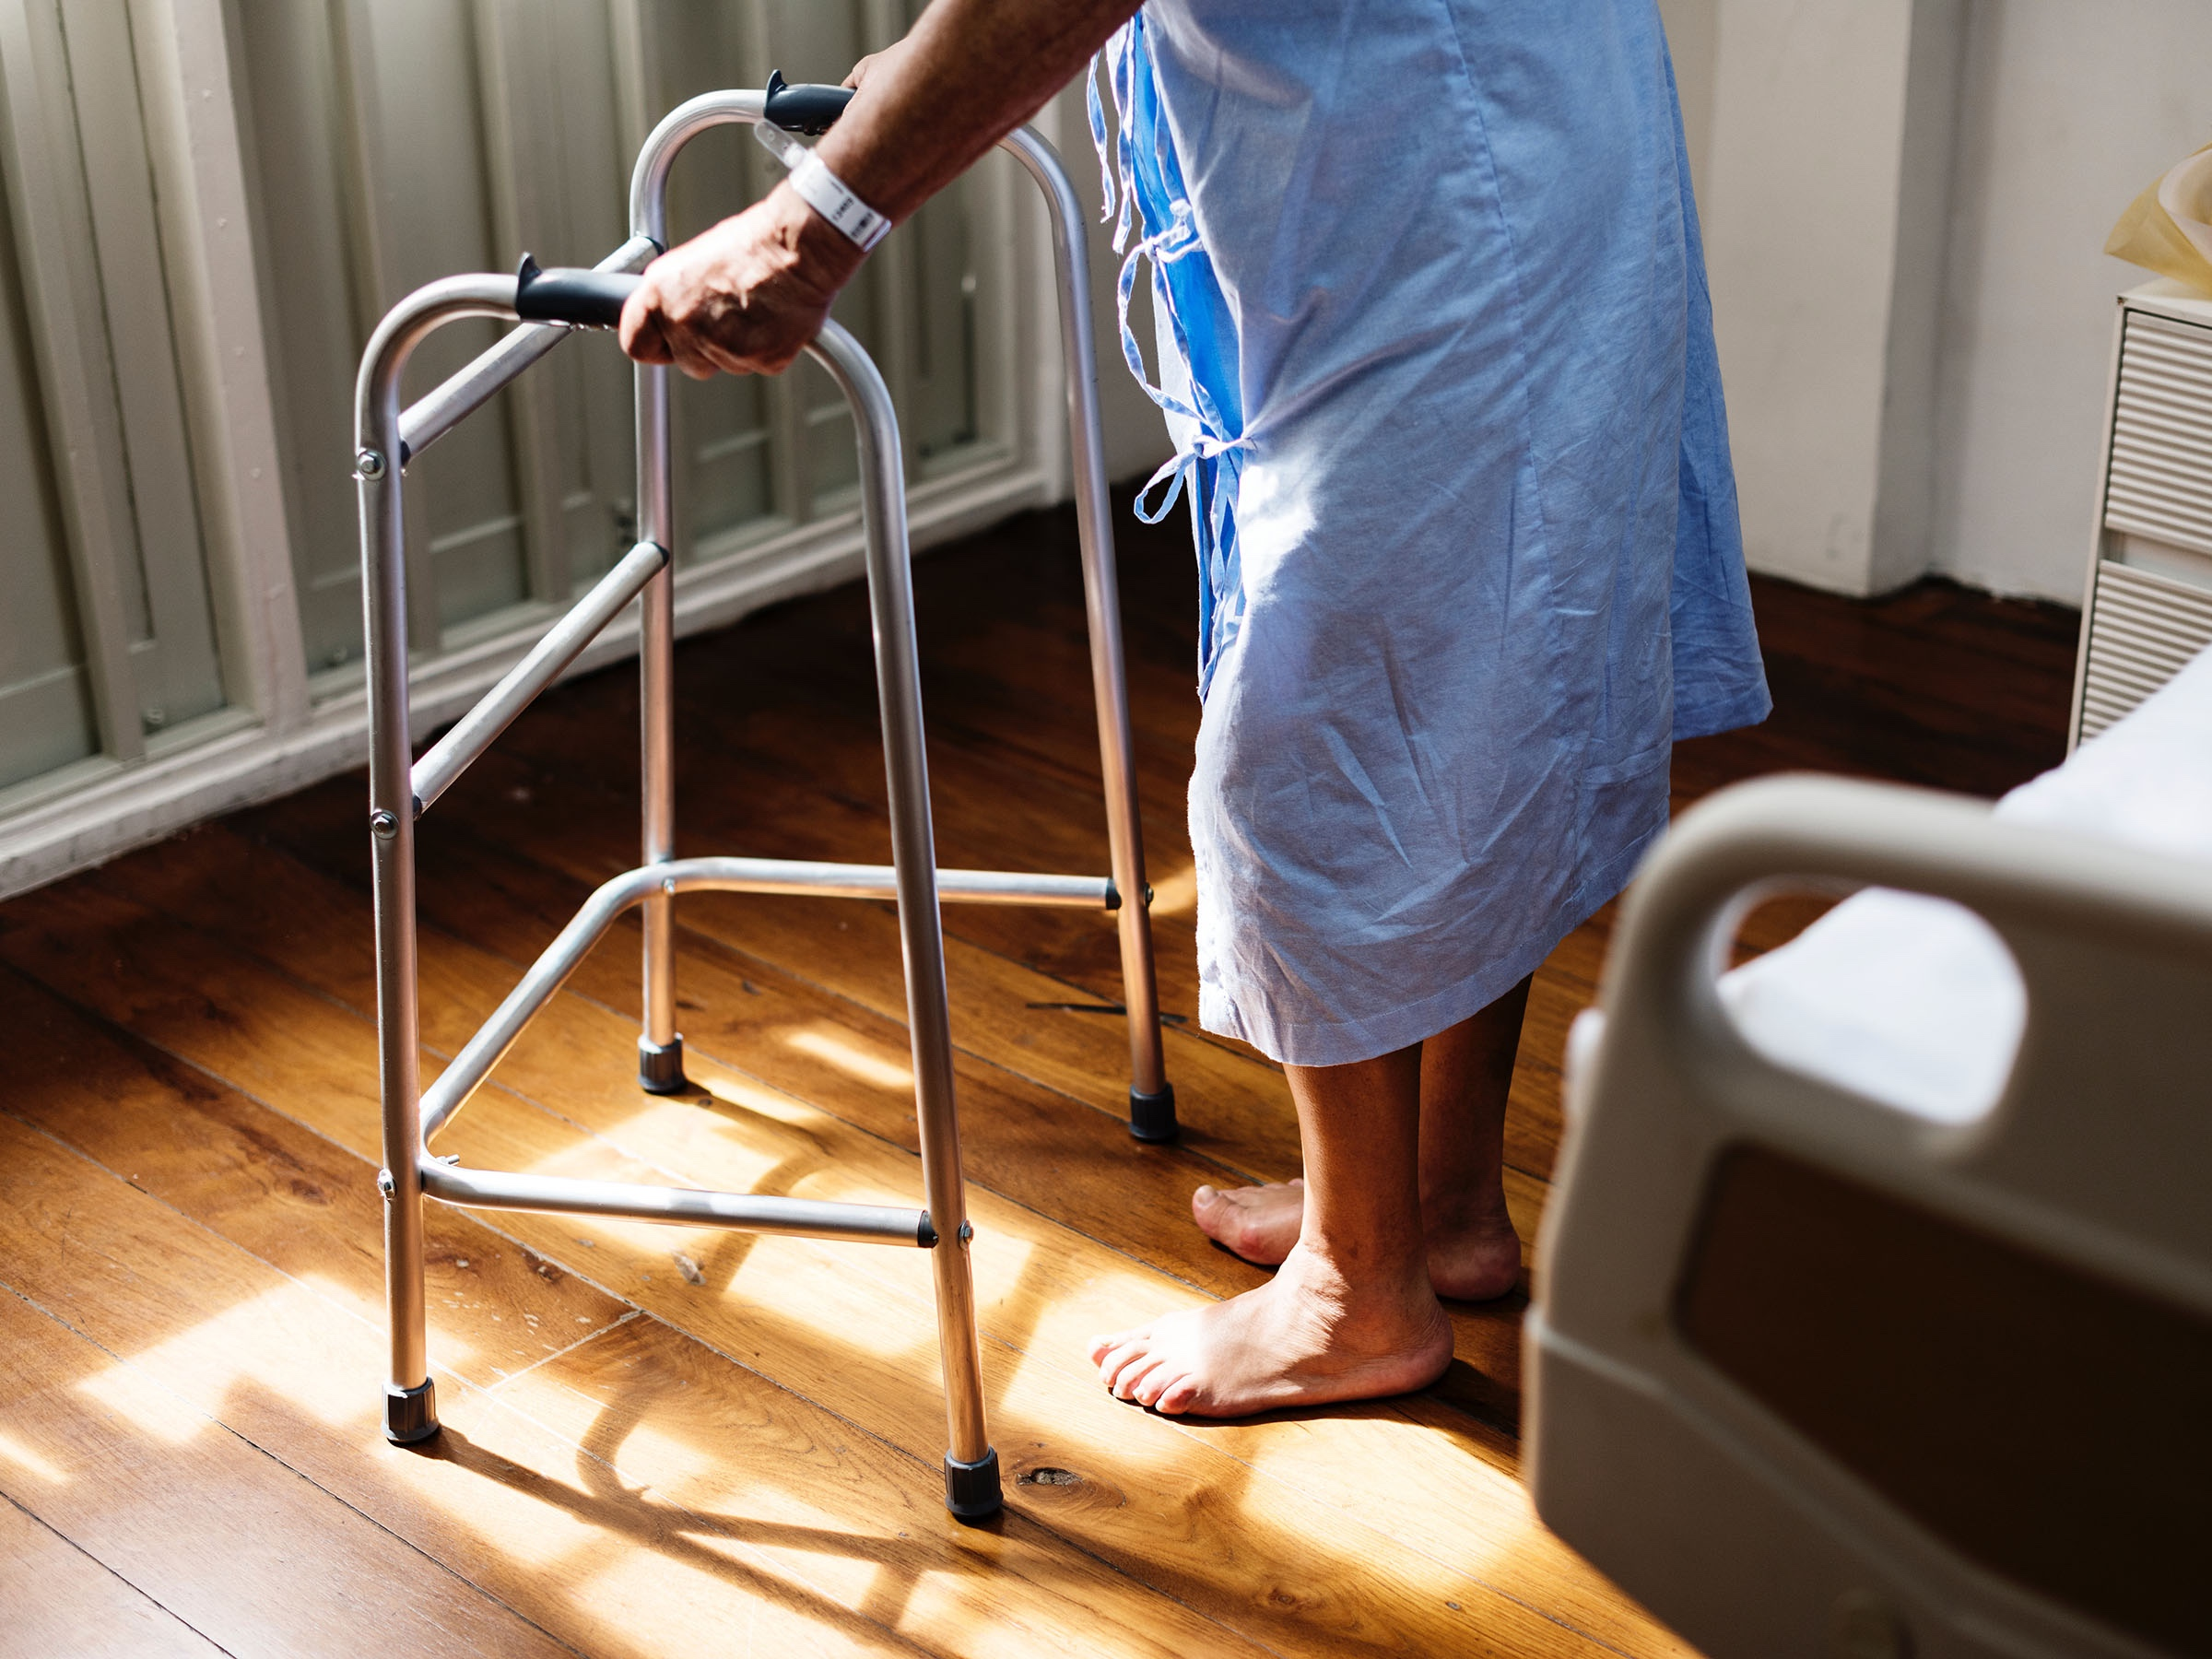 Person in hospital gown using walking frame beside hospital bed. Image Credit: rawpixel.com from Pexels